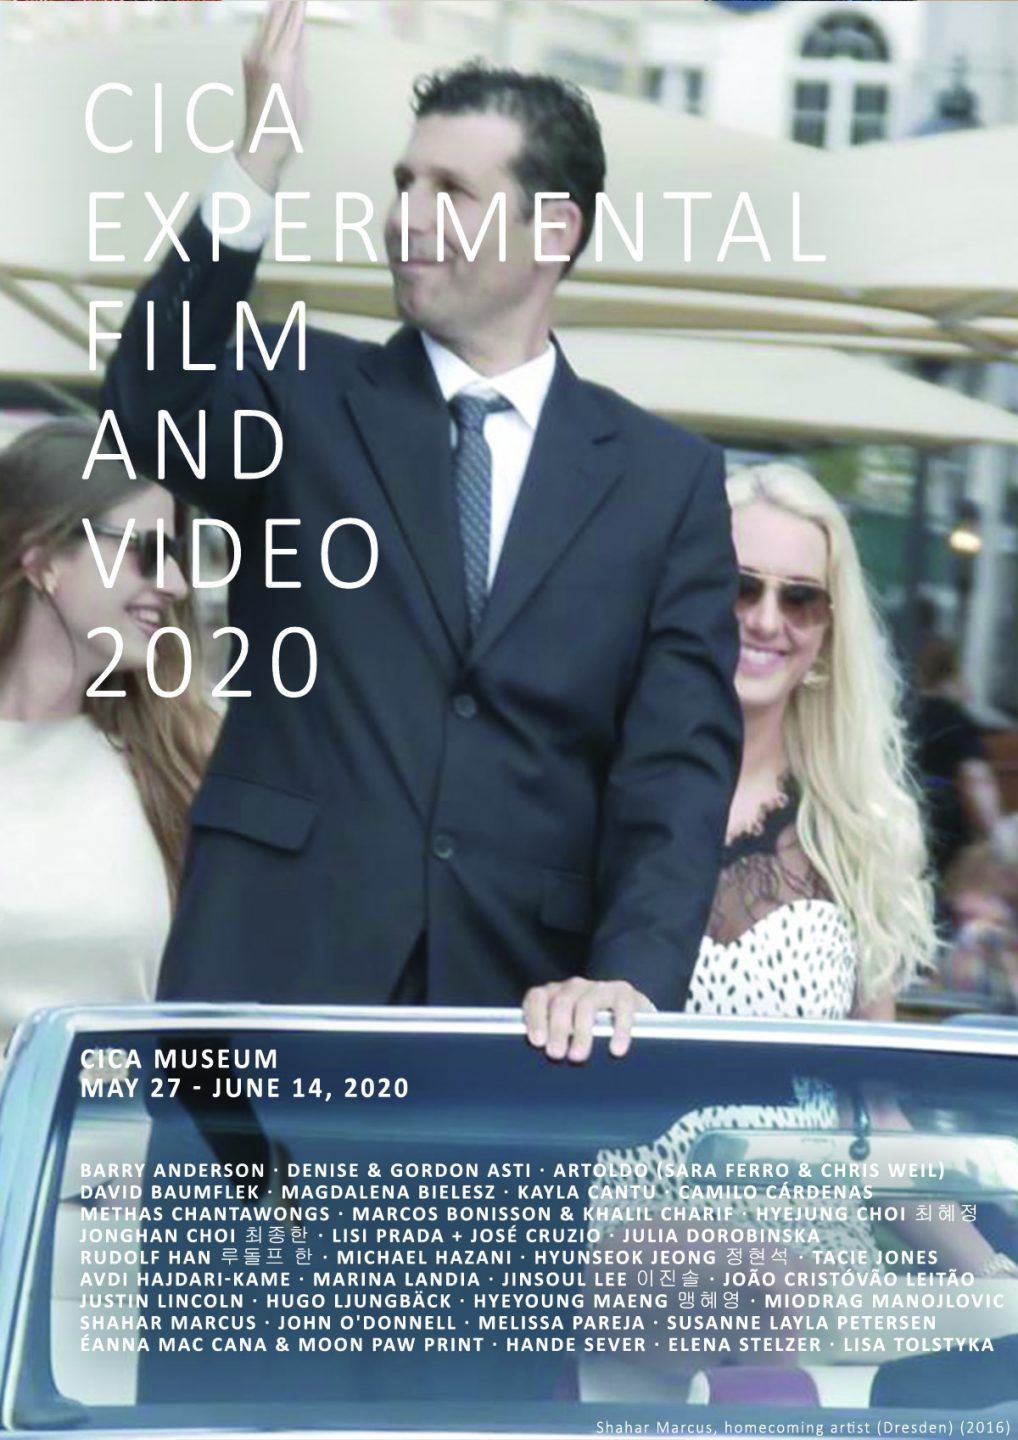 CICA Experimental Film and Video 2020 poster